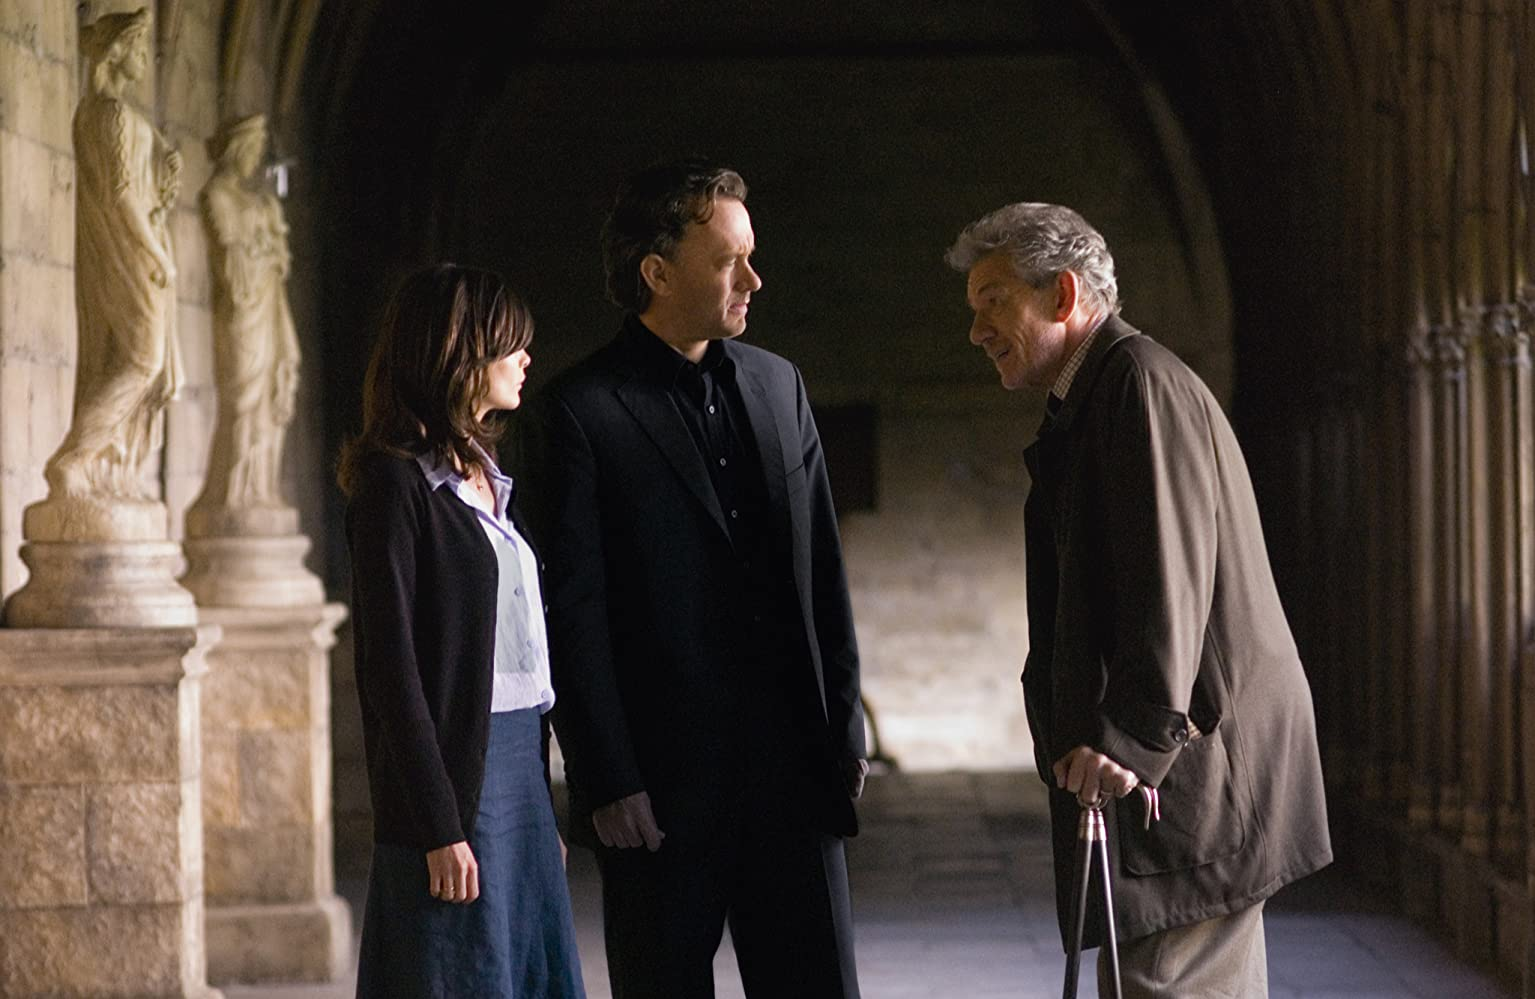 Tom Hanks, Ian McKellen, and Audrey Tautou in The Da Vinci Code (2006)